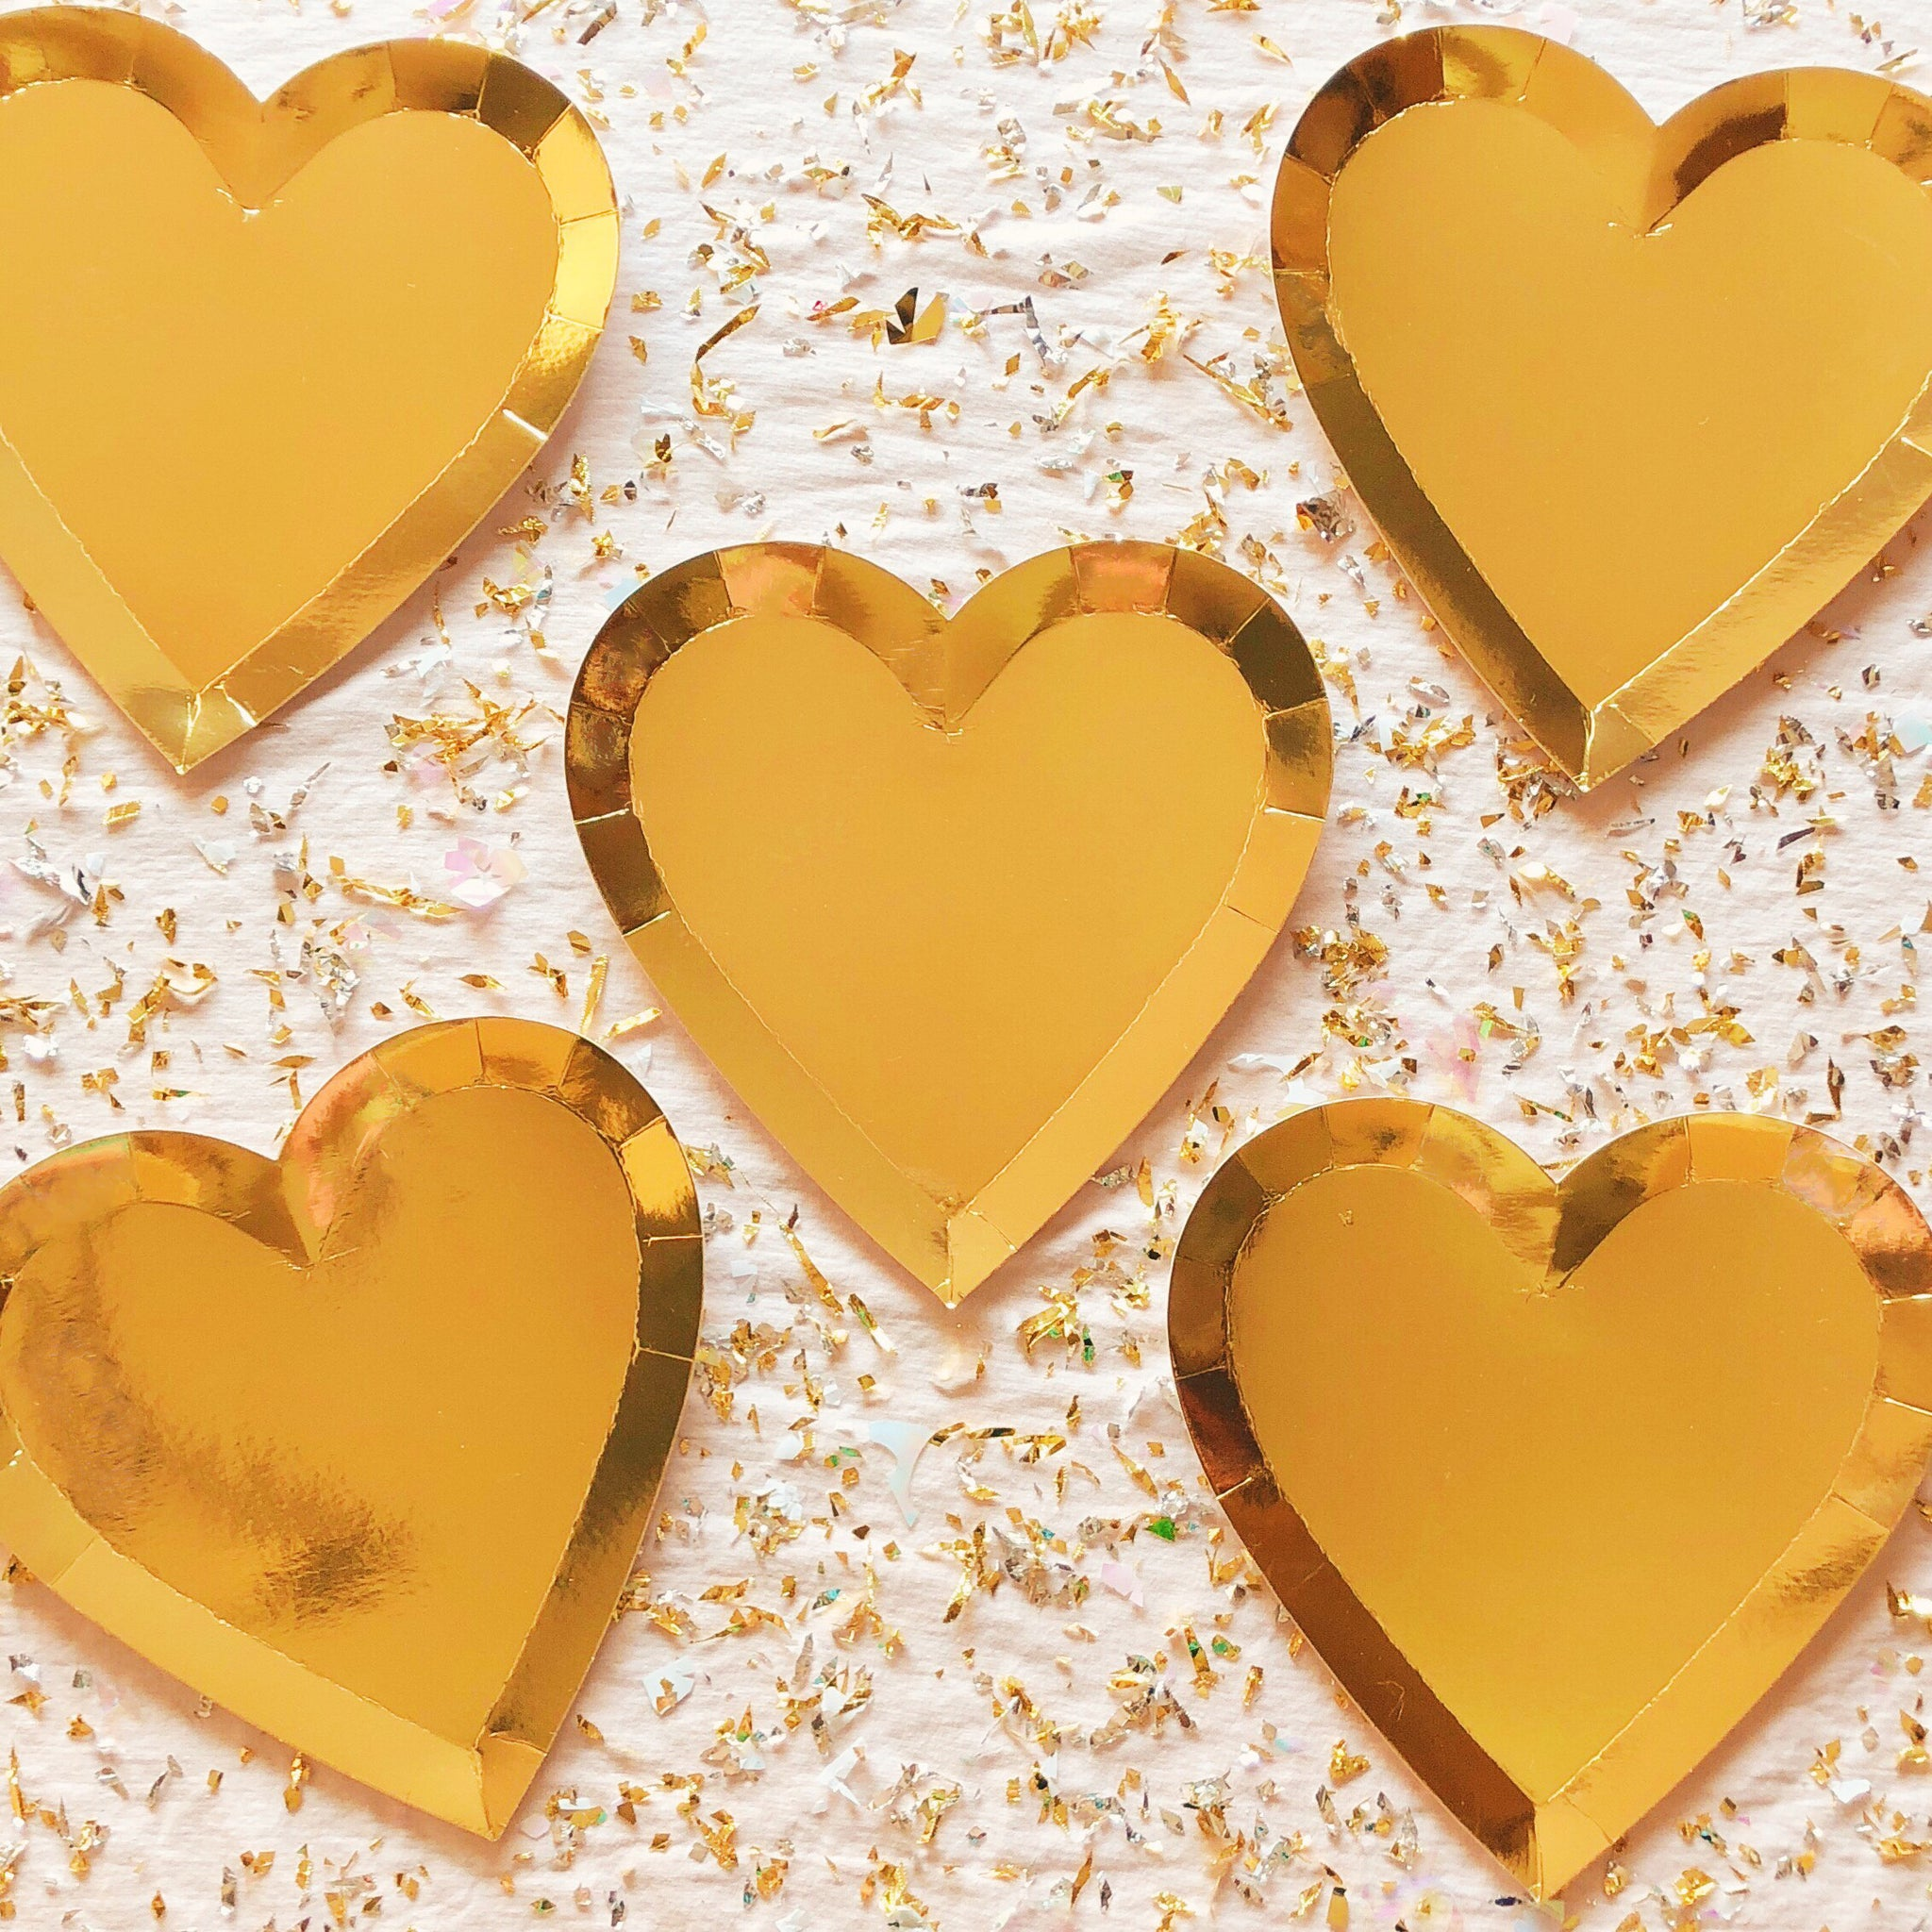 Large Gold Heart Paper Plates ...  sc 1 st  Pretty Little Things Collective & Large Gold Heart Paper Plates u2013 Pretty Little Things Collective